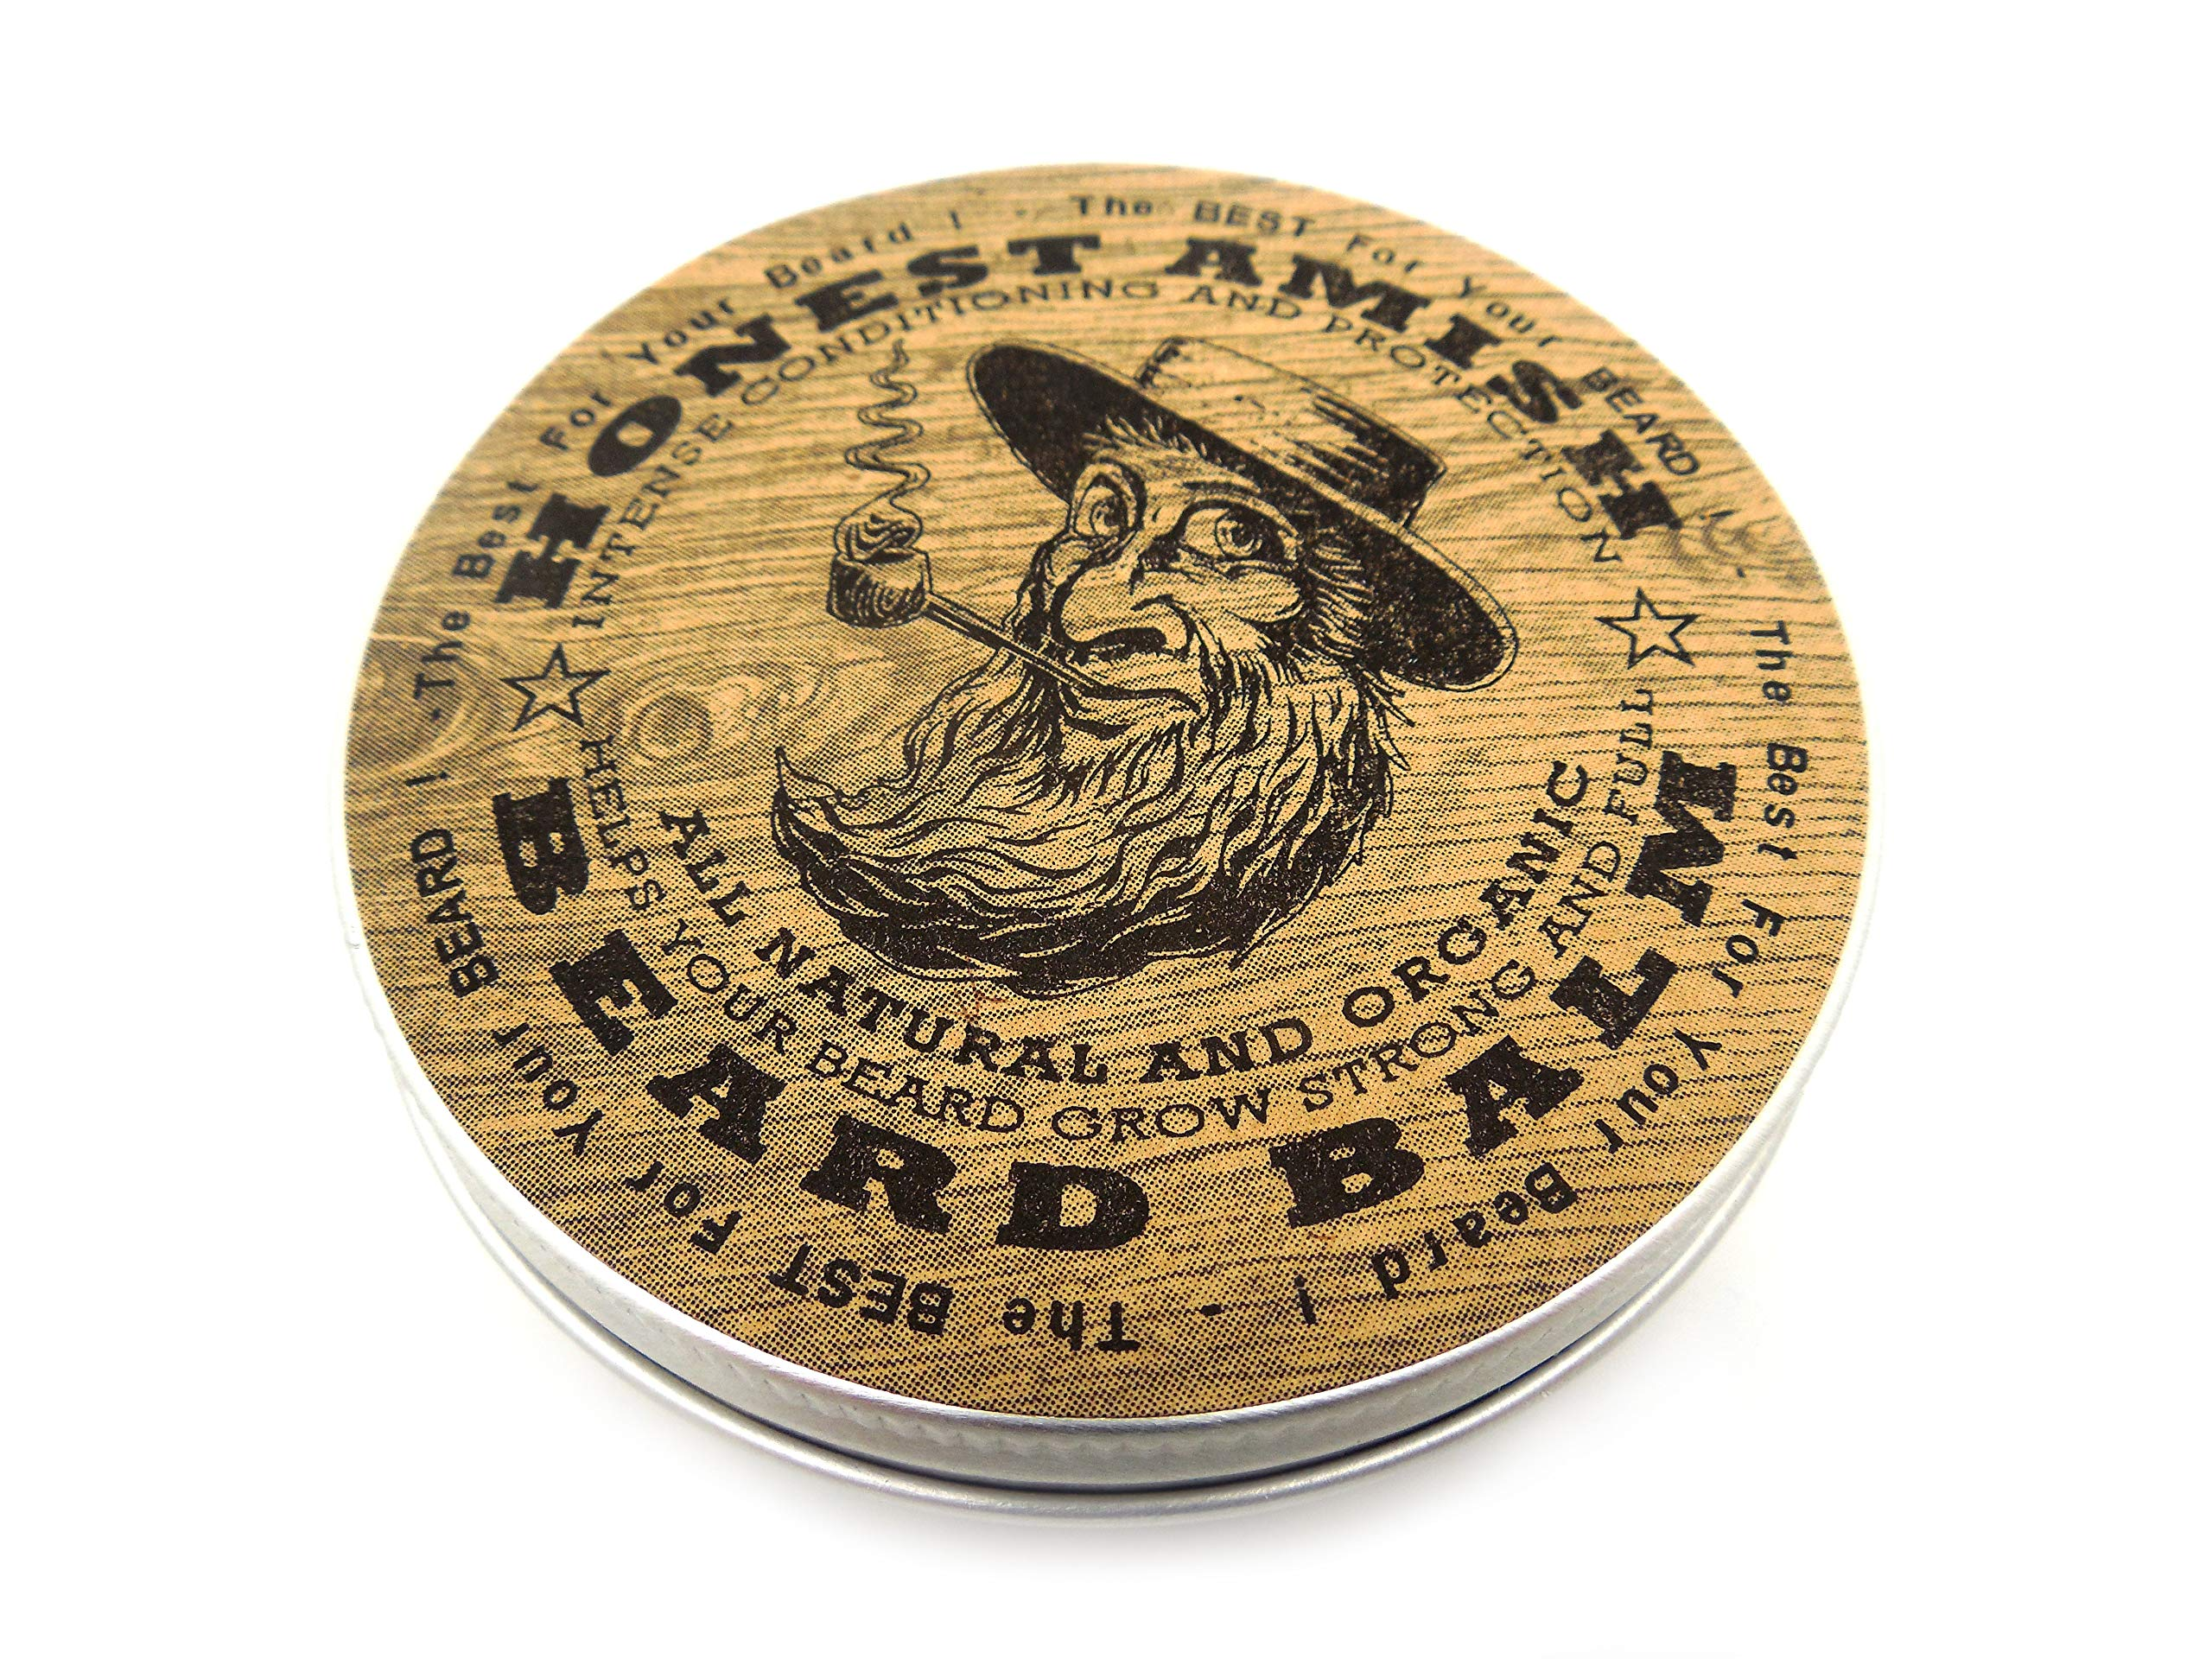 Honest Amish Beard Balm - New Large 4 Ounce Twist Tin